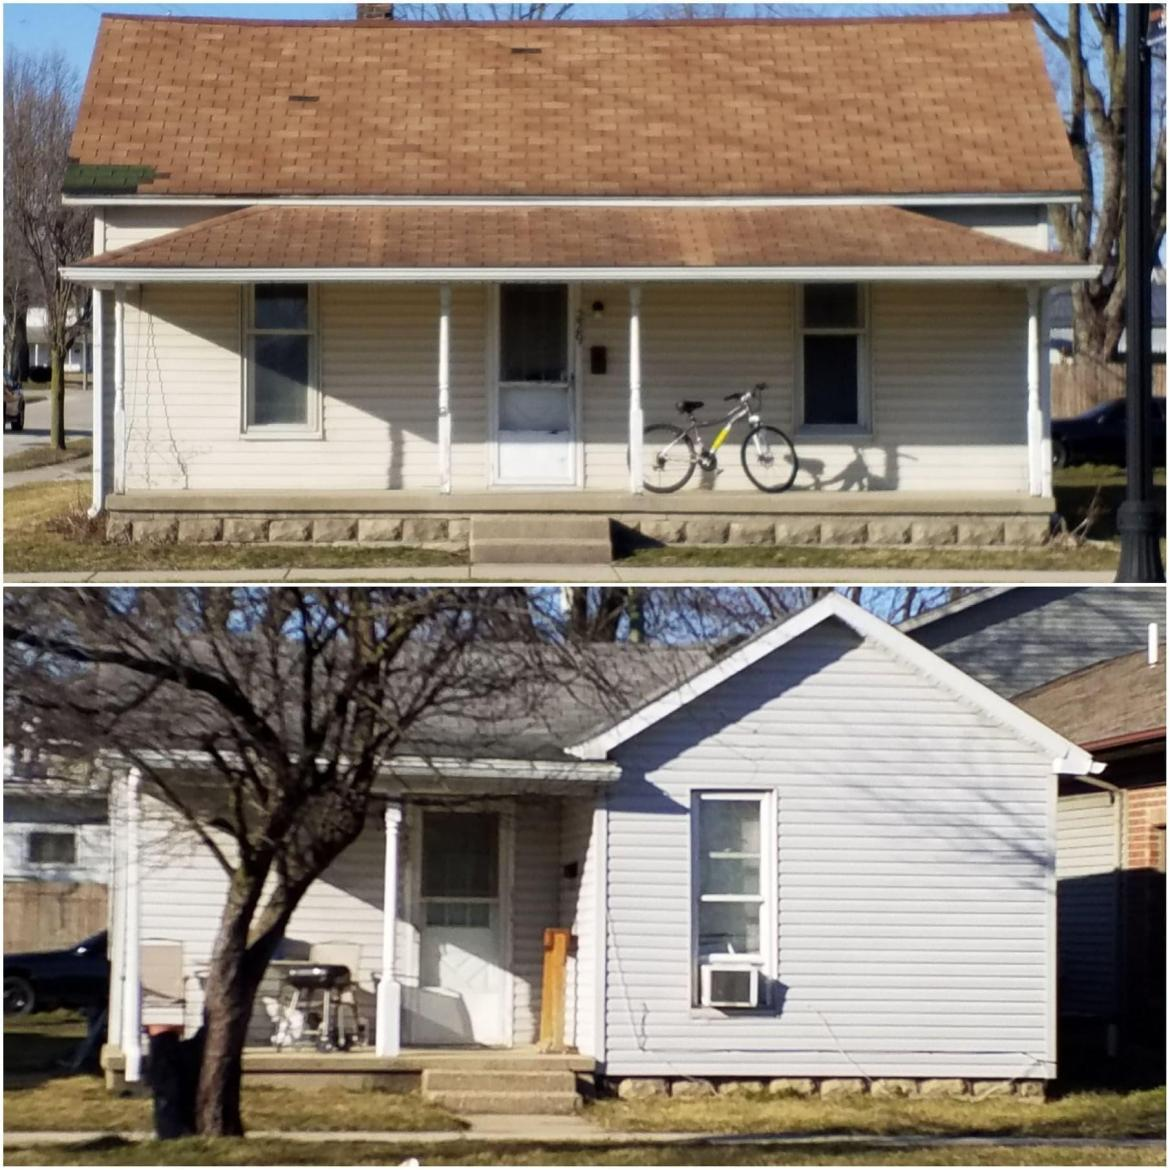 Investment opportunity. Two houses for the price of one on the same lot. Let the rent make your payment. 229 W Logan is a 1,008 sq ft 3 bed 1 bath home being rented for $625 per month + utilities. 225 W Logan is a 636 sq ft 2 bed 1 bath home being rented for $475 per month + utilities. Off-street parking is located in back. Please allow ample notice for showings as renters will need to be contacted.